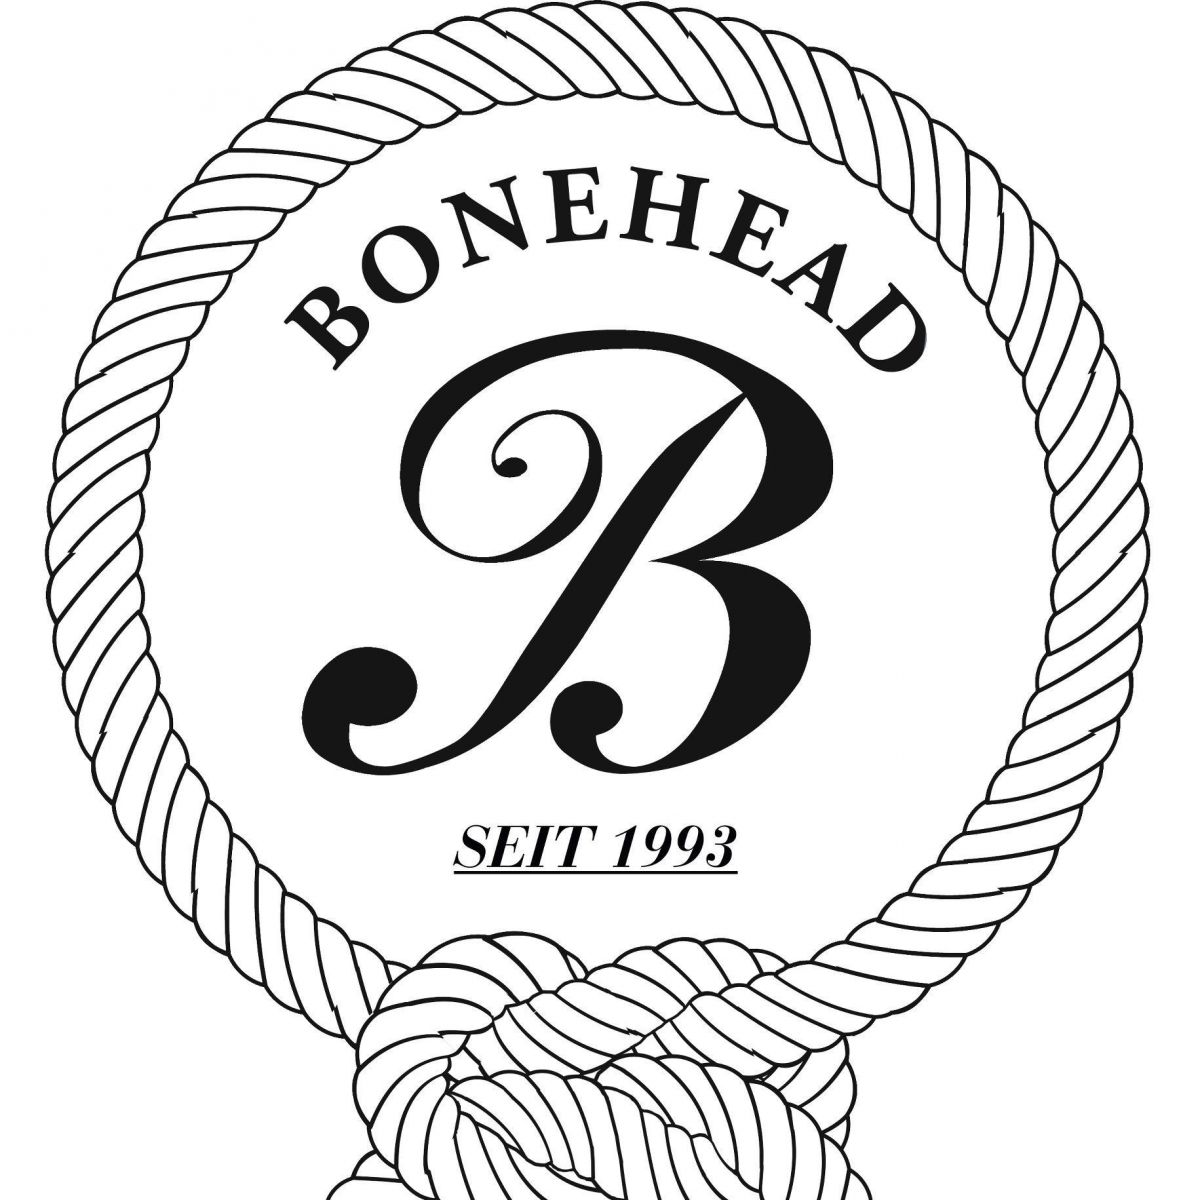 Bonehead Shoes